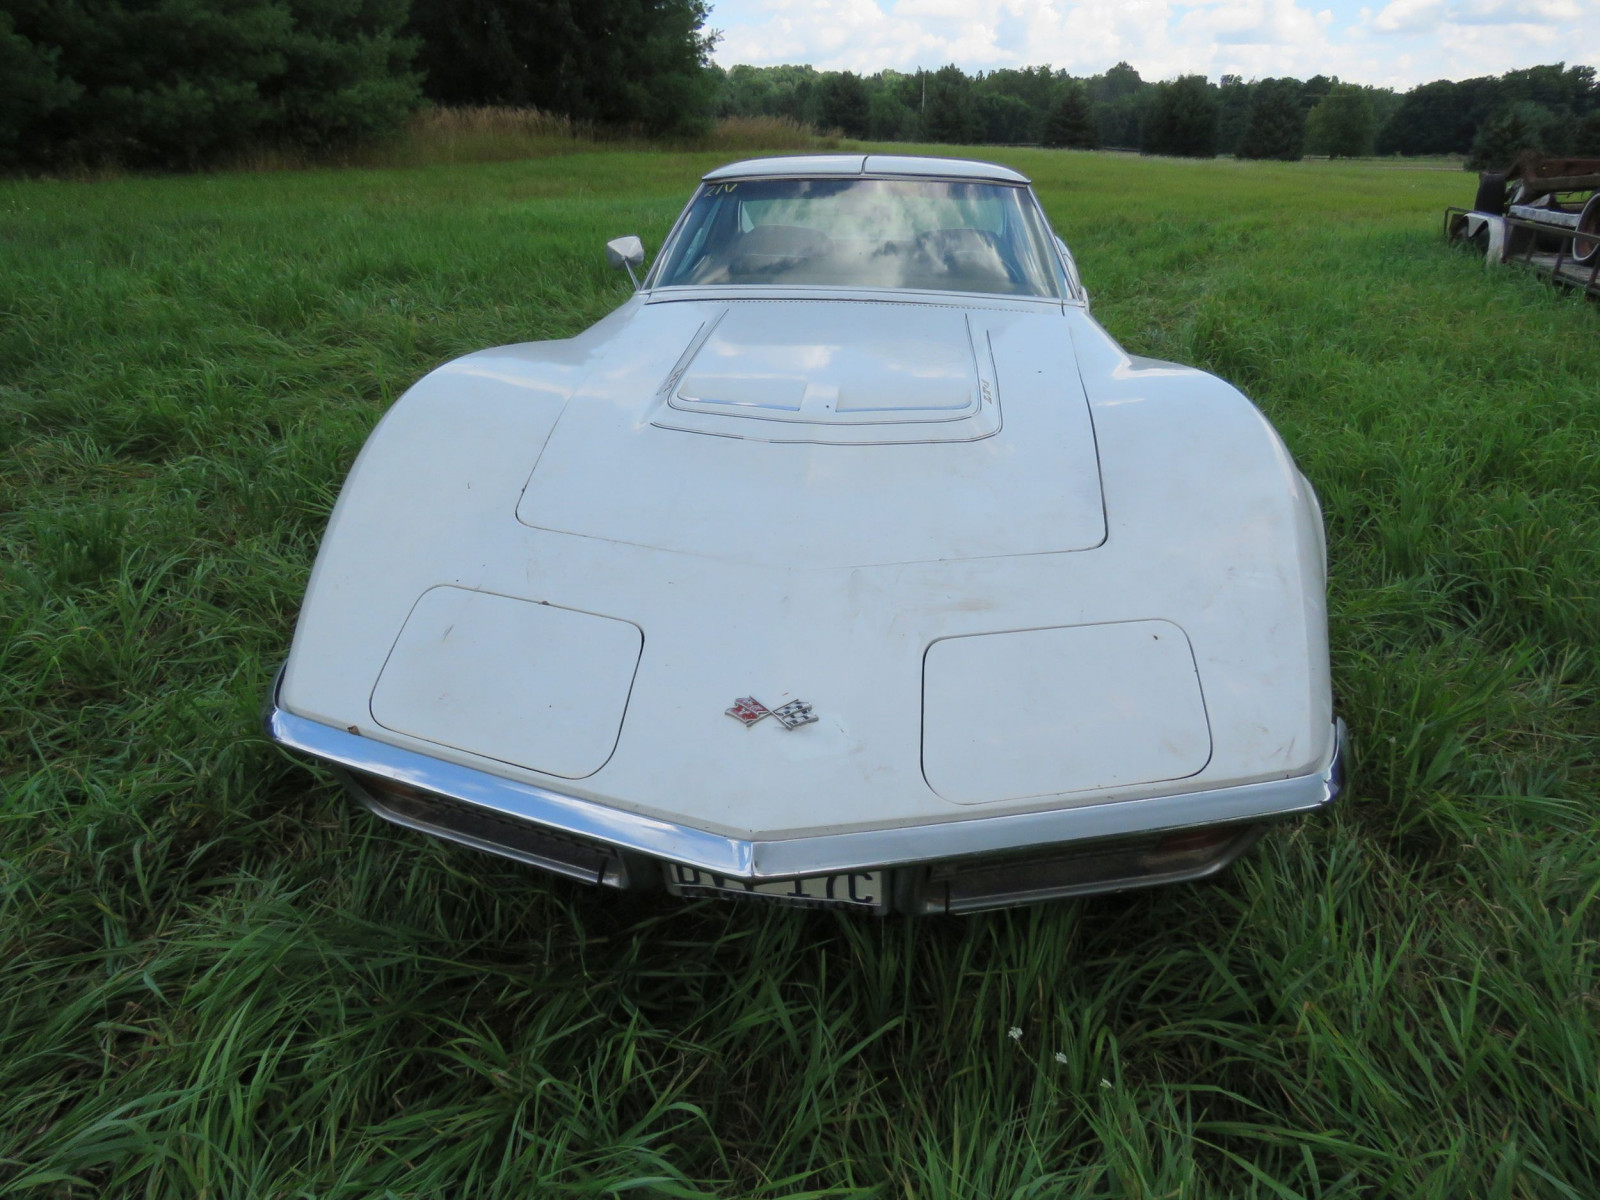 1971 Chevrolet Corvette Stingray Coupe - Image 2